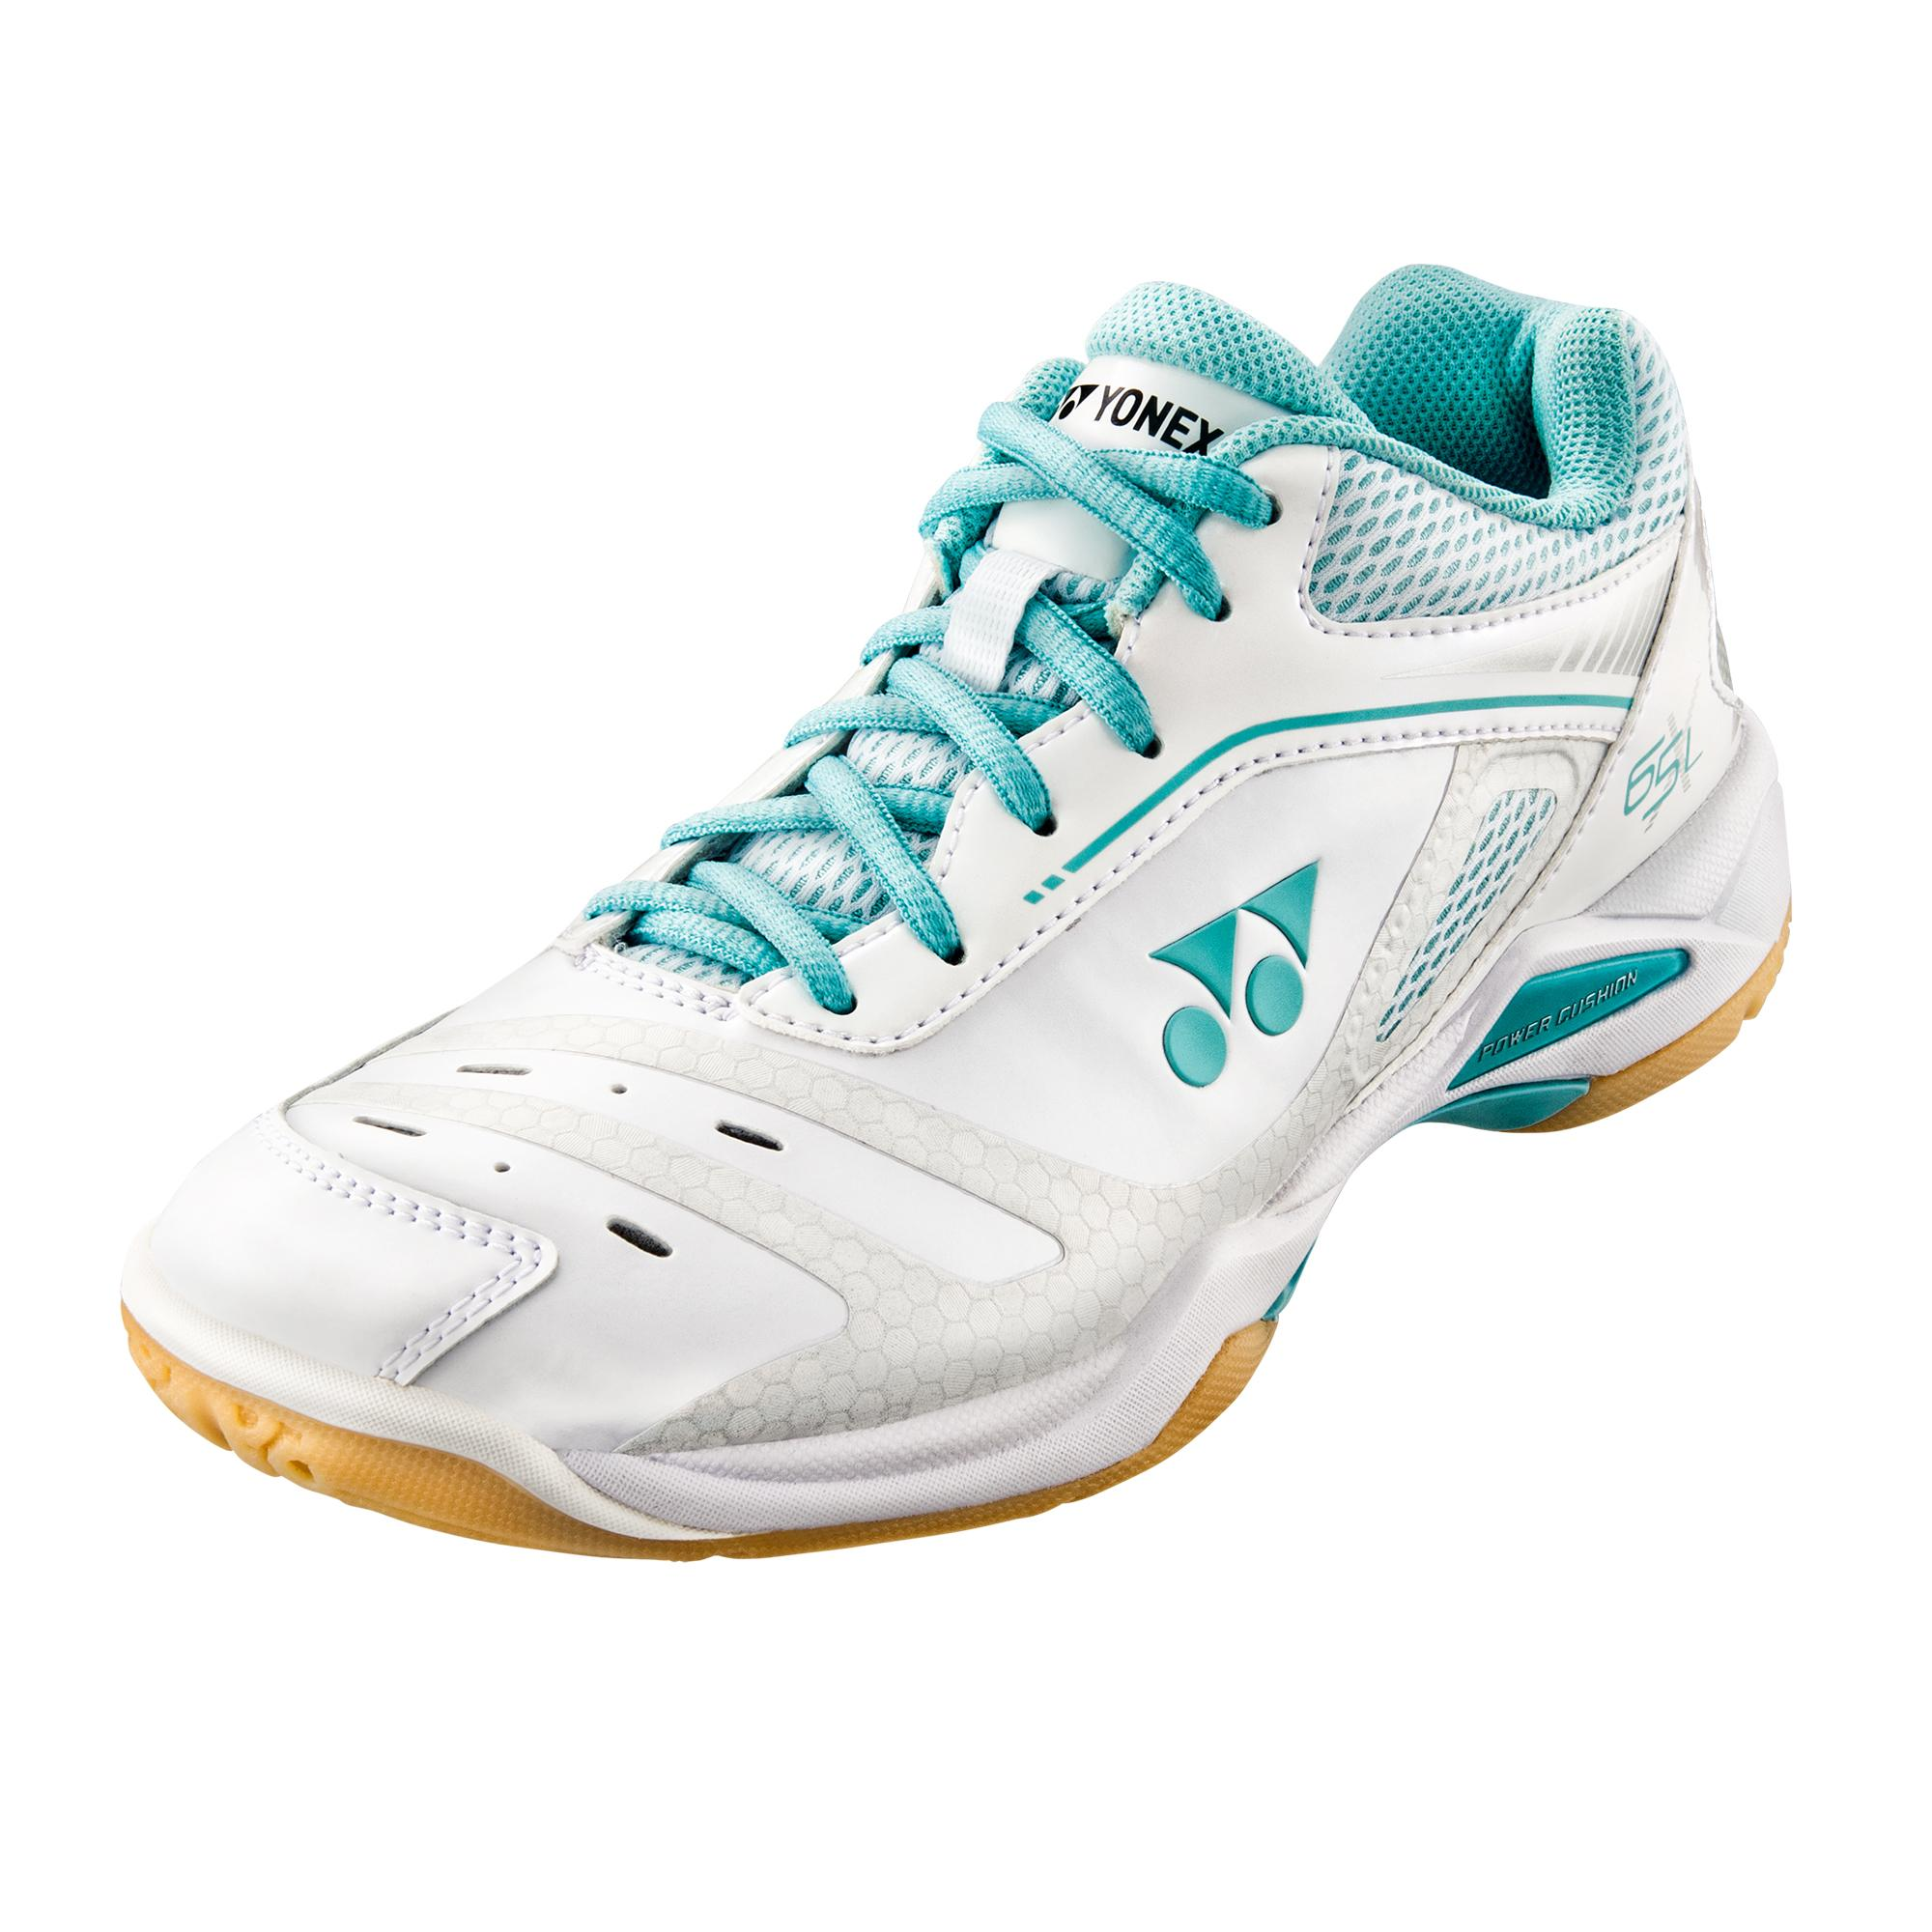 Yonex Power Cushion 65 X Ladies Sunriseclick Official Yonex Online Shop